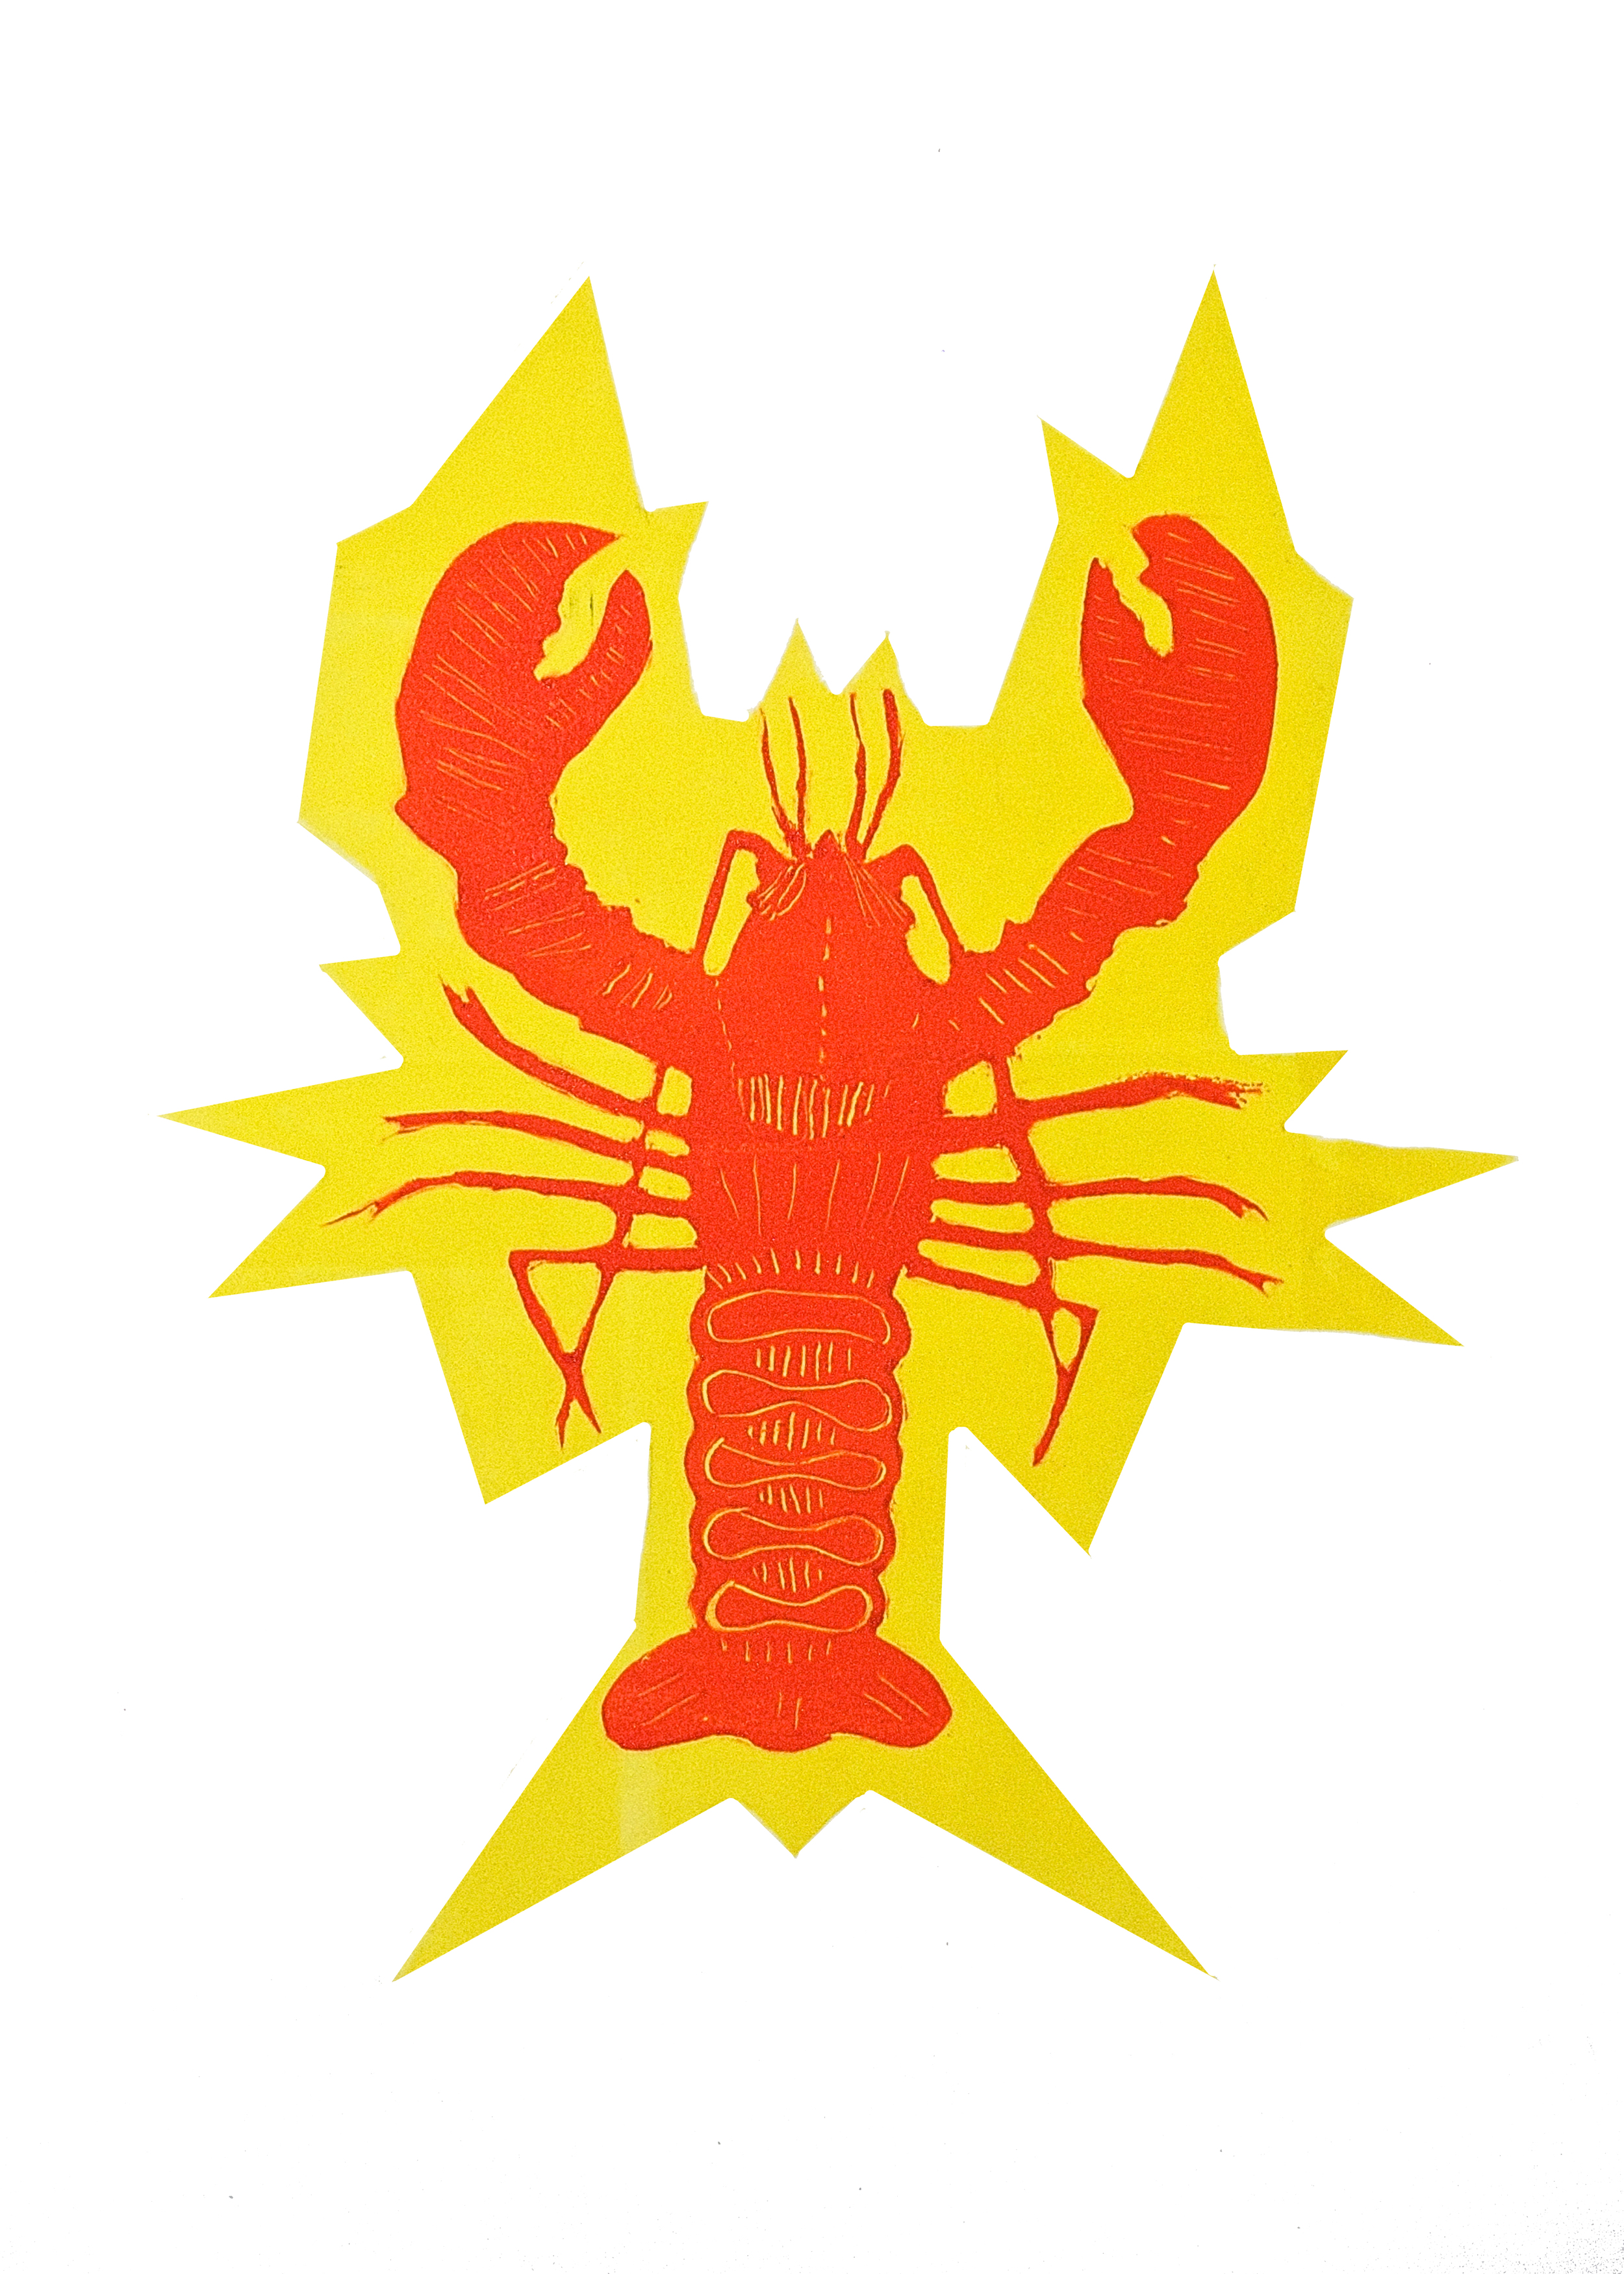 discolobster